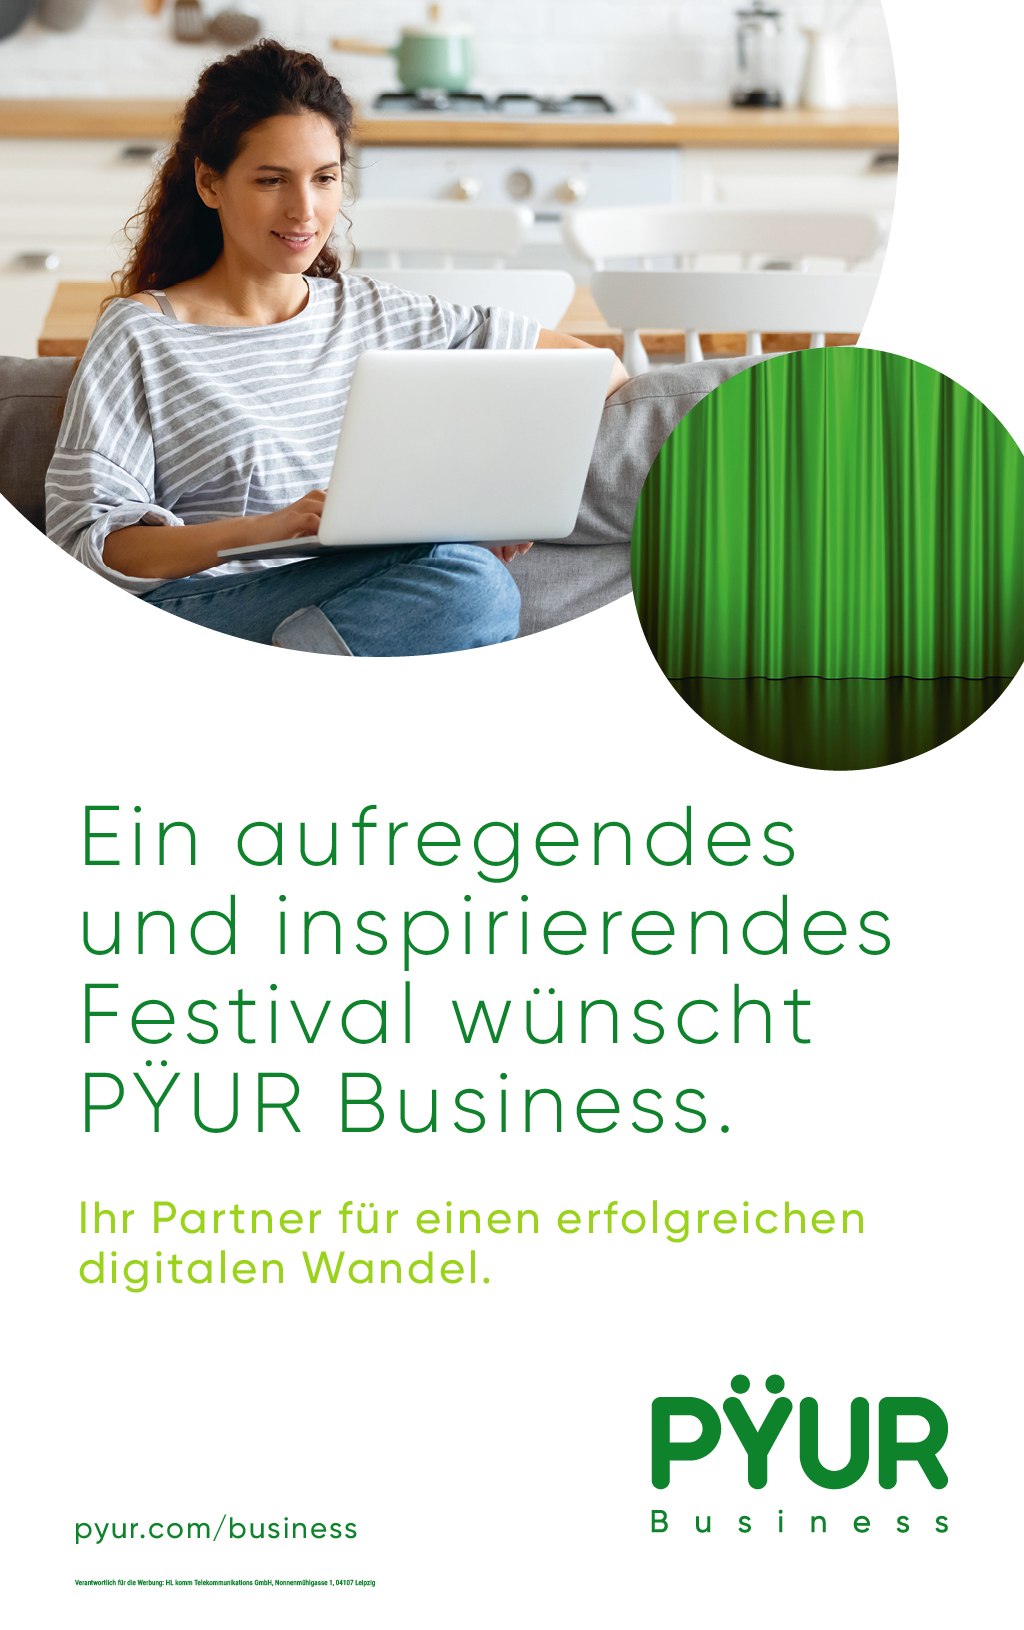 Partner advertisement by Pyur Business